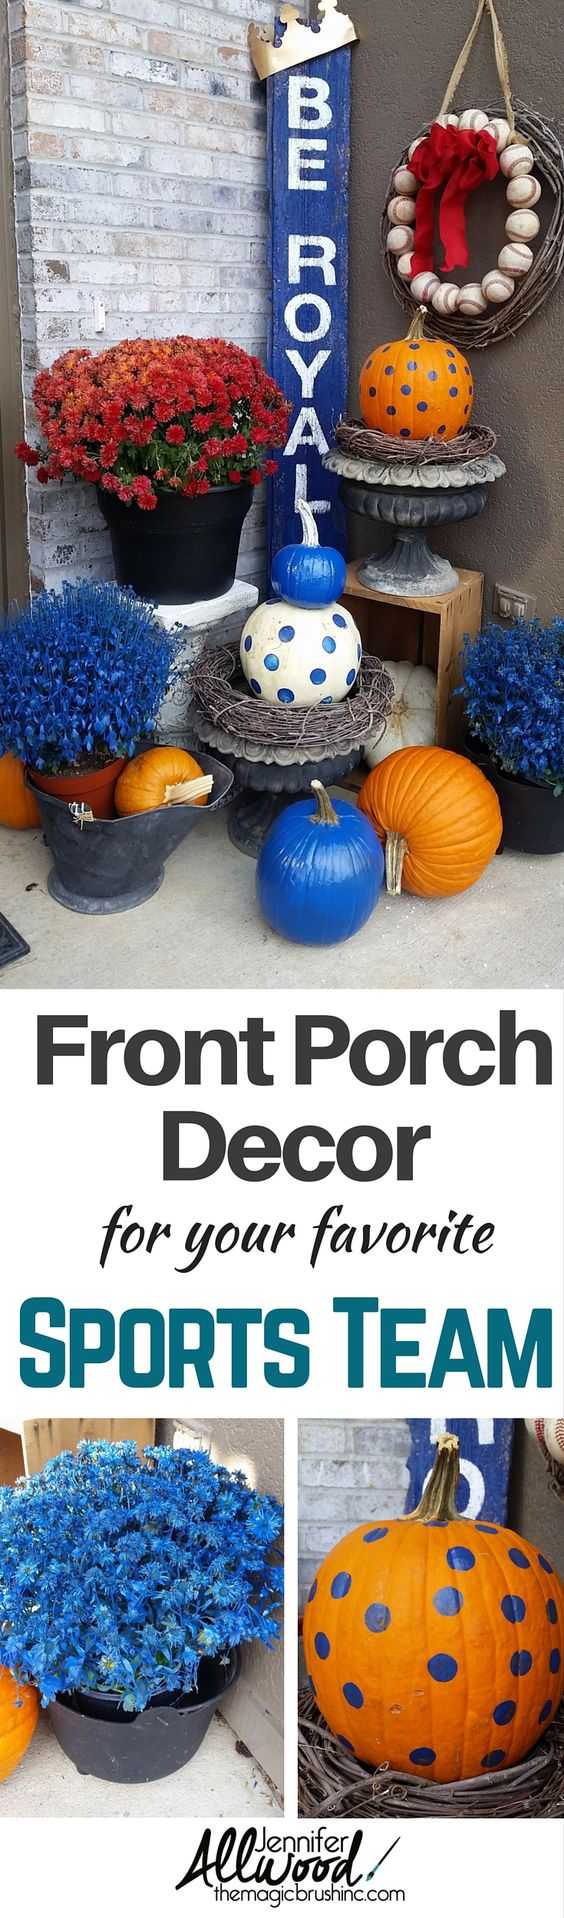 Go Royals! I'm supporting the Kansas City Royals in the World Series! Here's how to show off your SUPER FAN status with front porch decor supporting your favorite sports team. Jennifer uses painted pumpkins, stenciled barnwood and spray pained mums. theMagicBrushinc.com